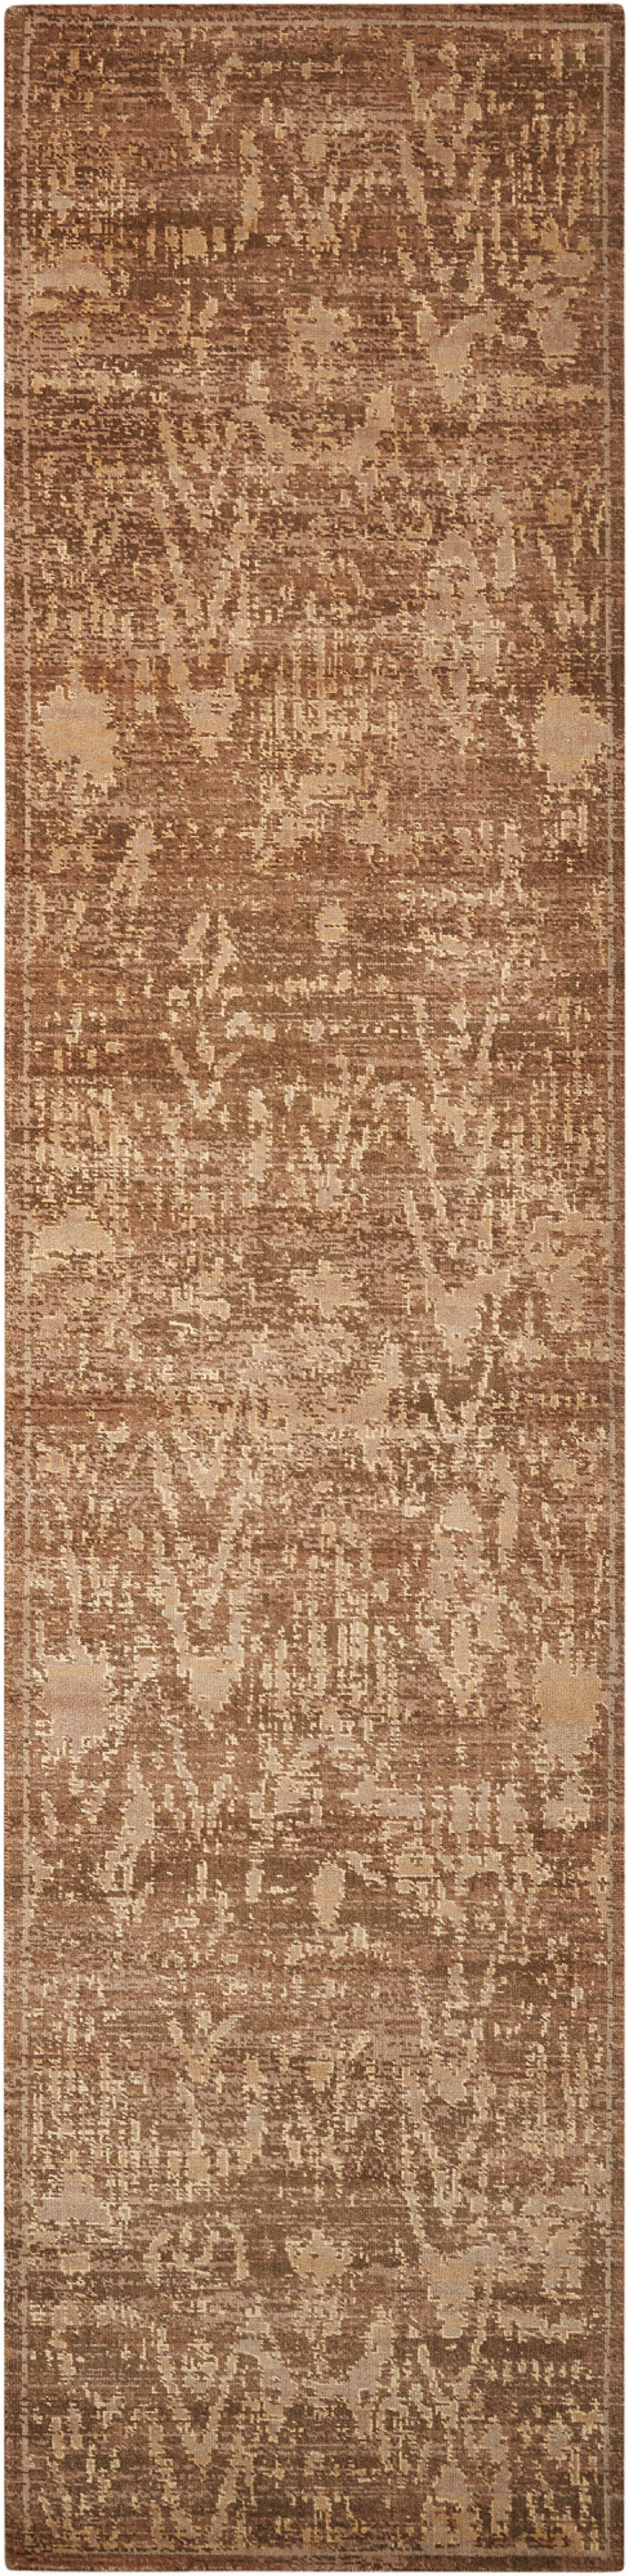 Dringenberg Traditional Chocolate Area Rug Rug Size: Runner 2'5